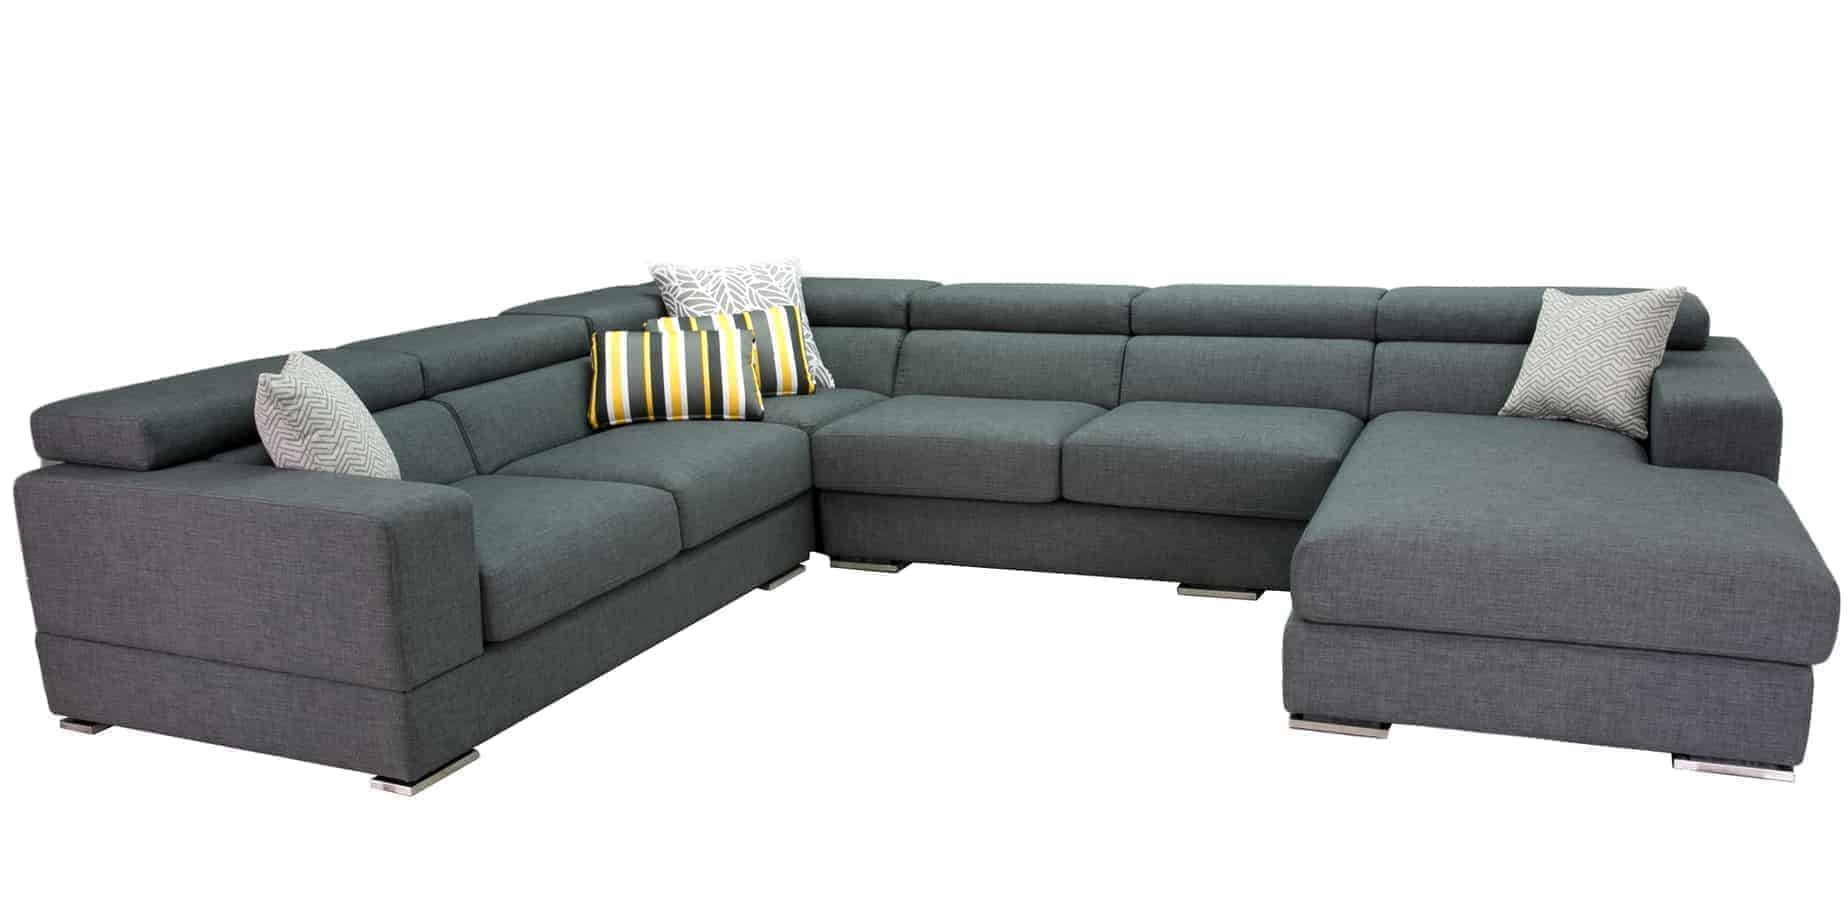 Buy Modular lounge suites from Sydney Lounge Specialists